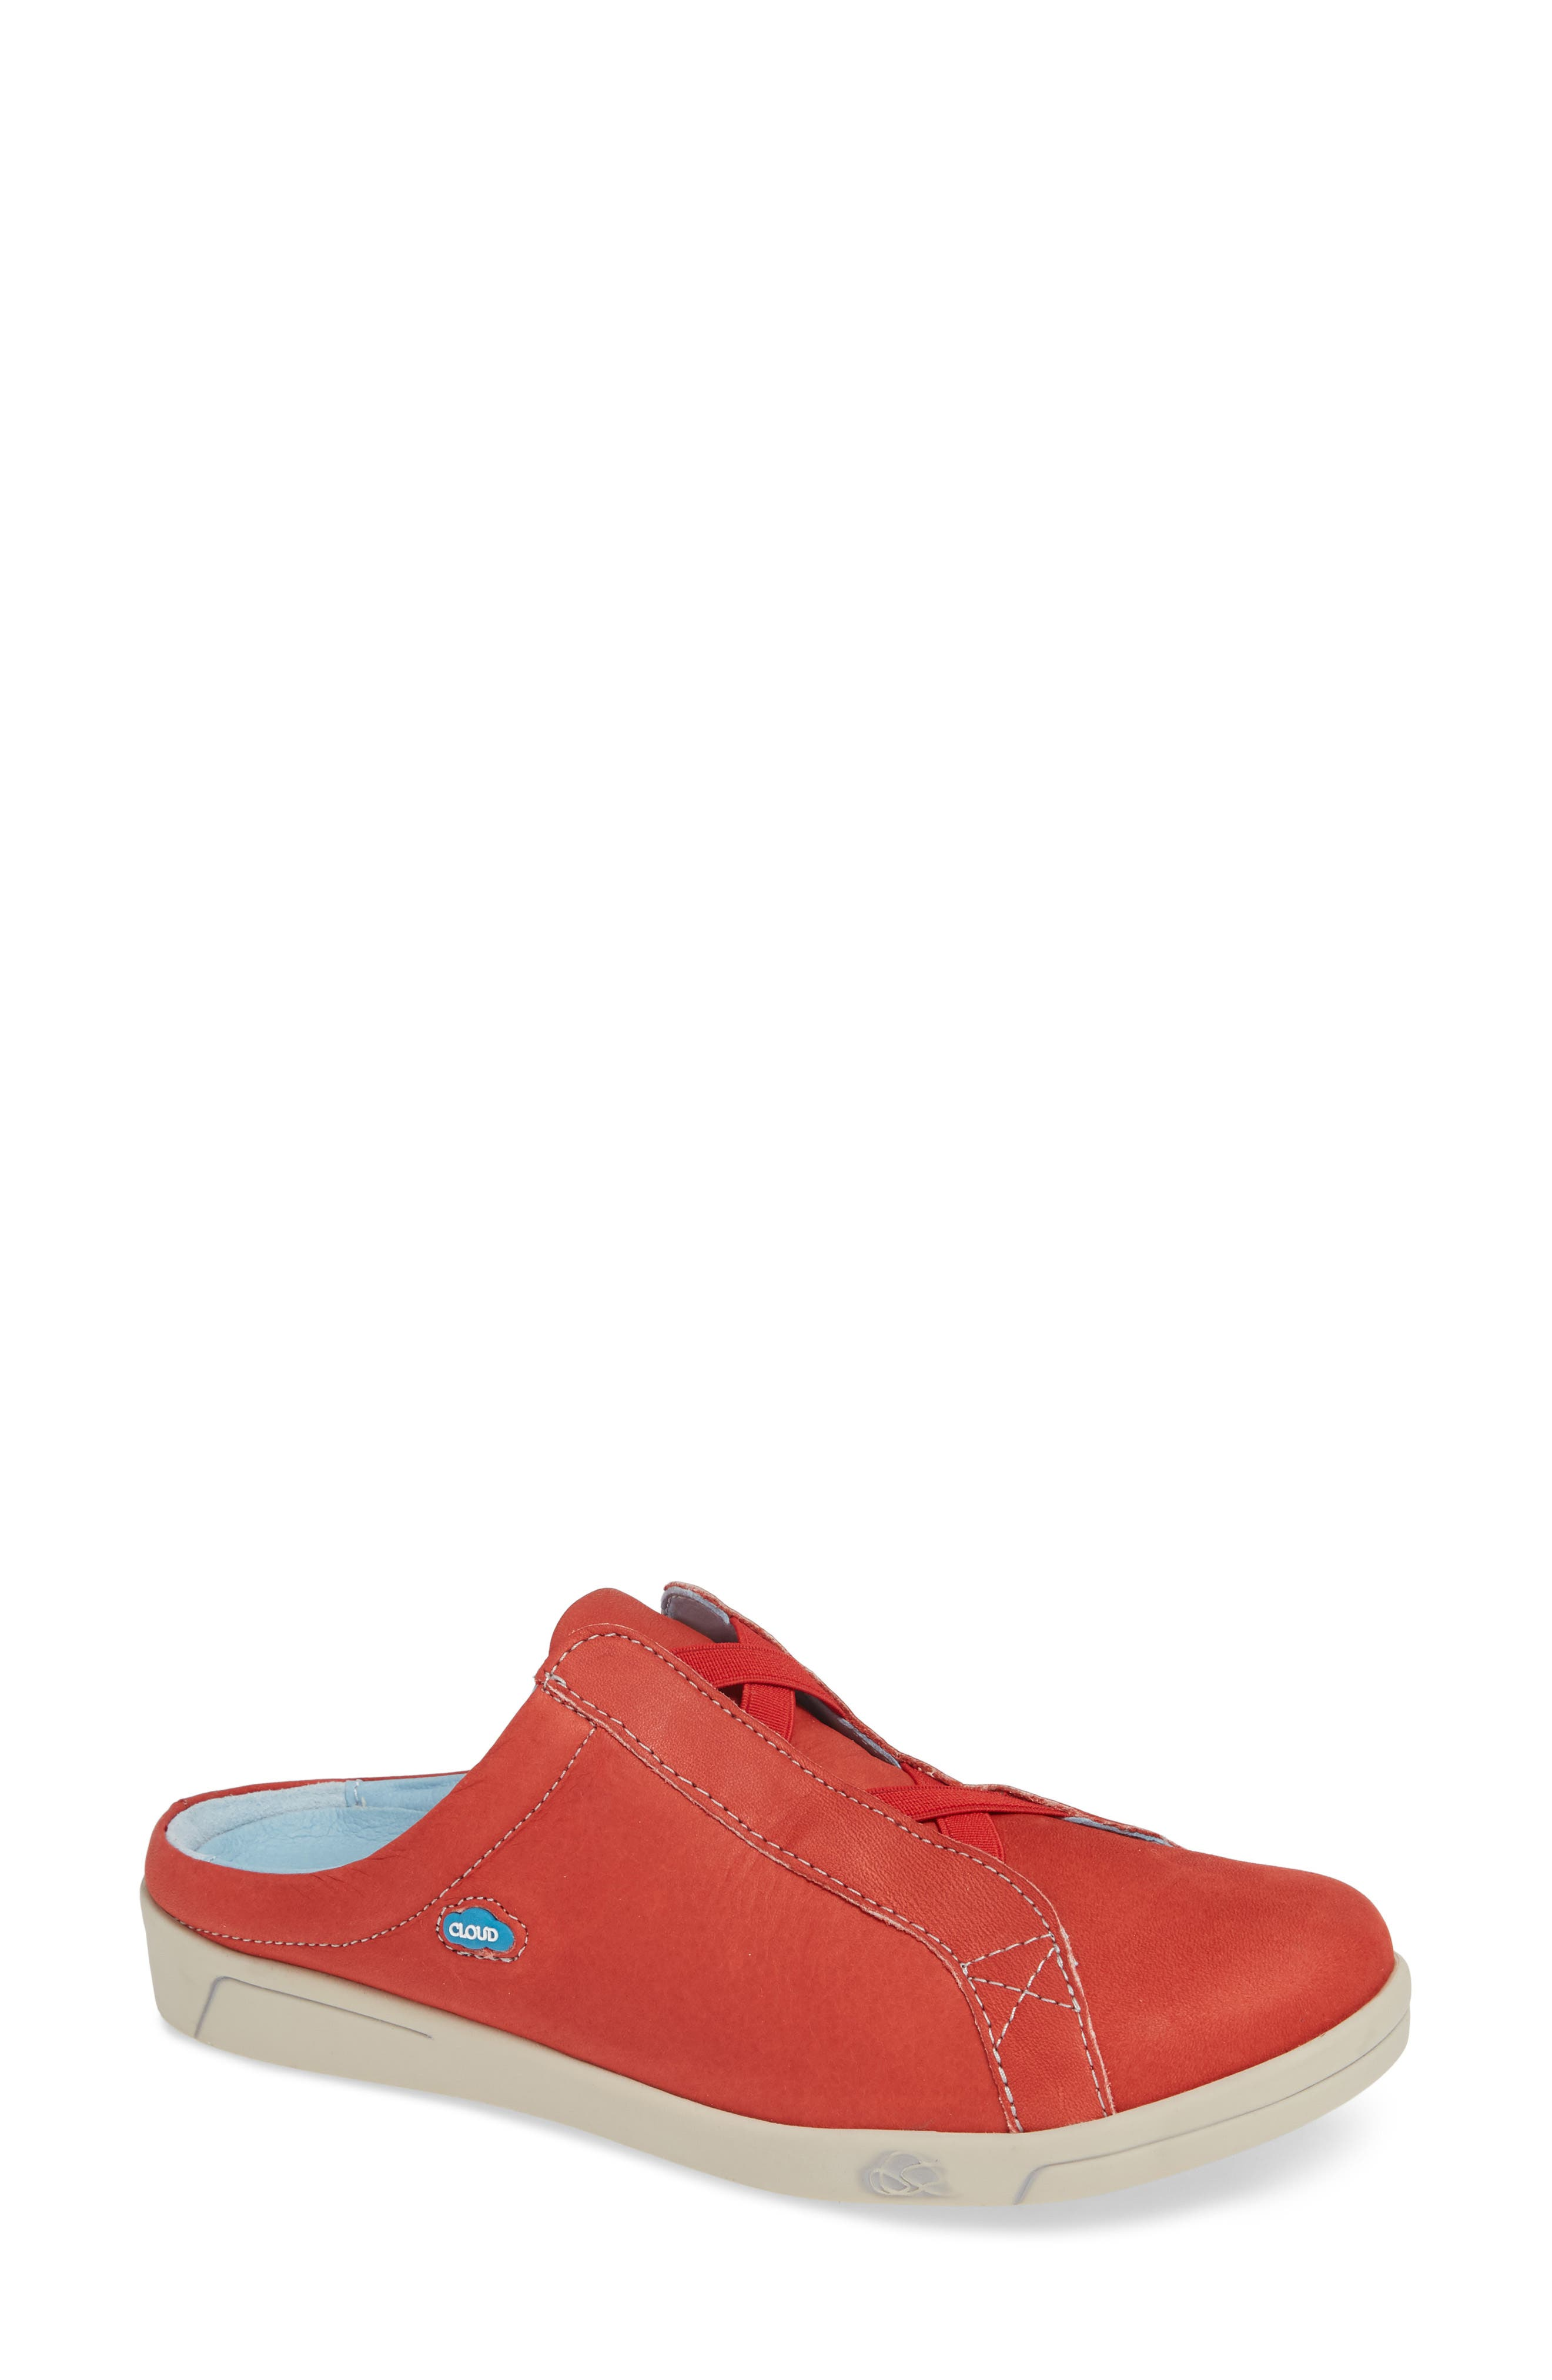 Arizona Sneaker,                             Main thumbnail 1, color,                             RED LEATHER